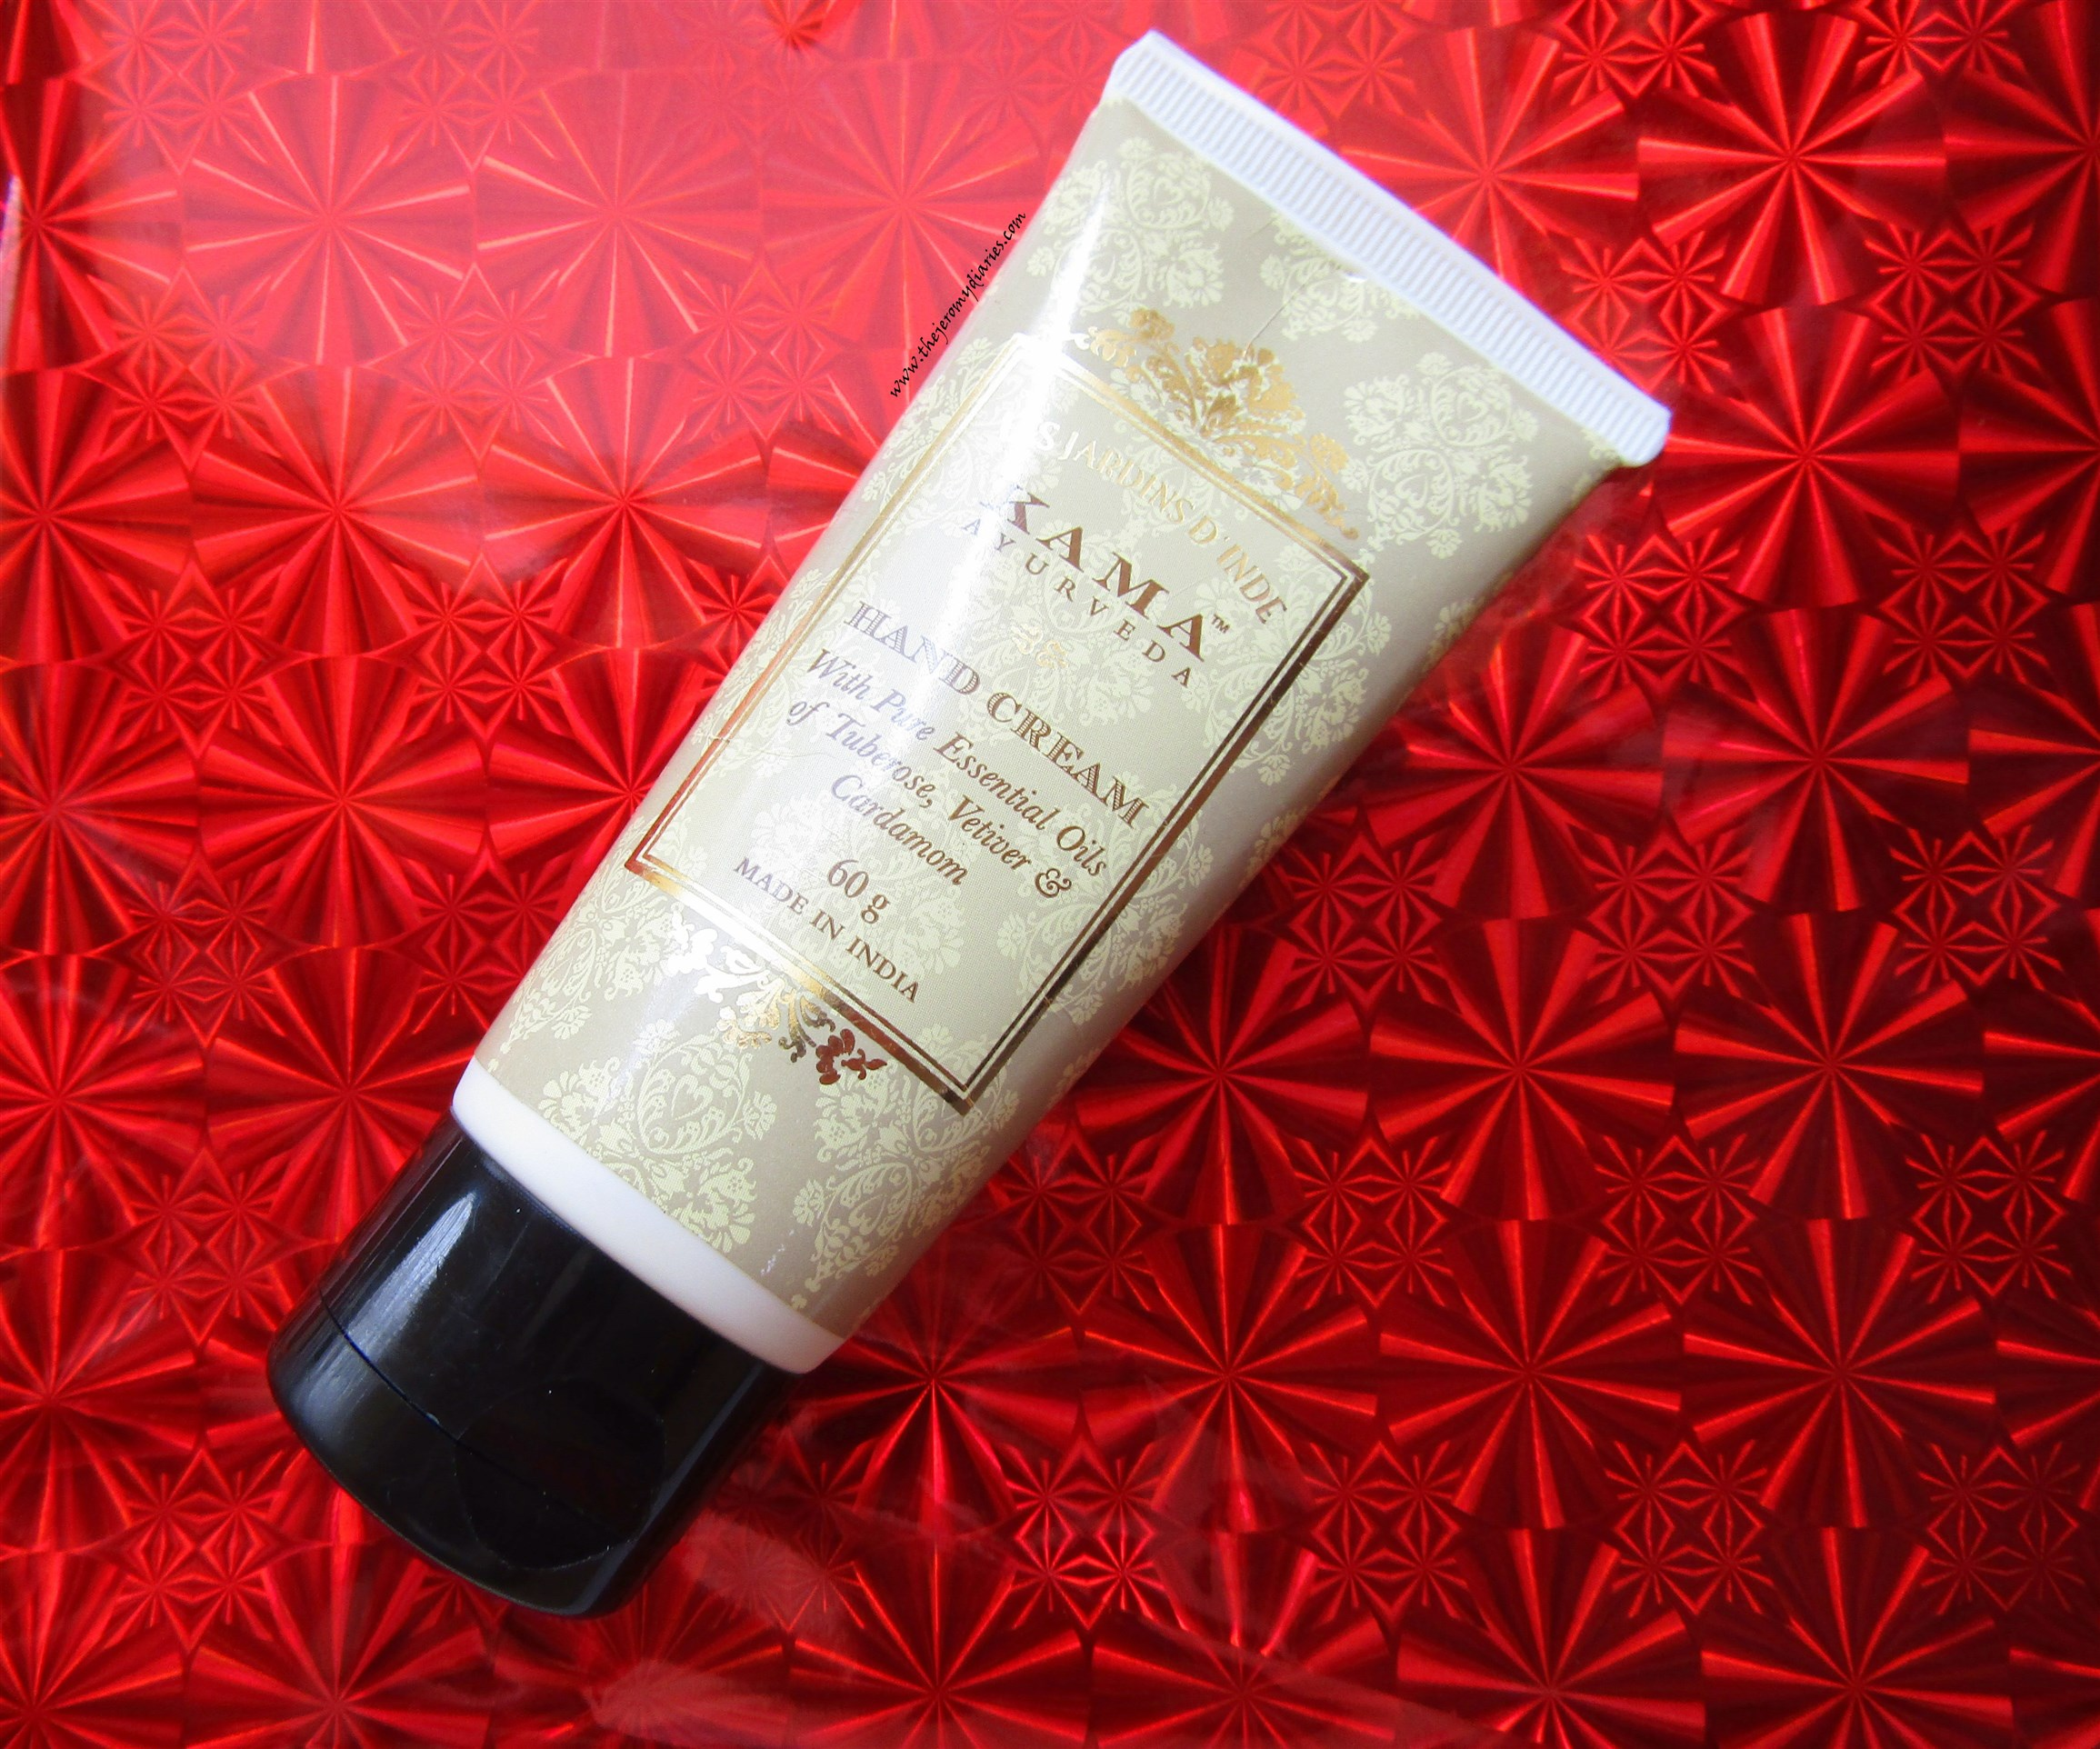 best kama ayurveda products in india the jeromy diaries